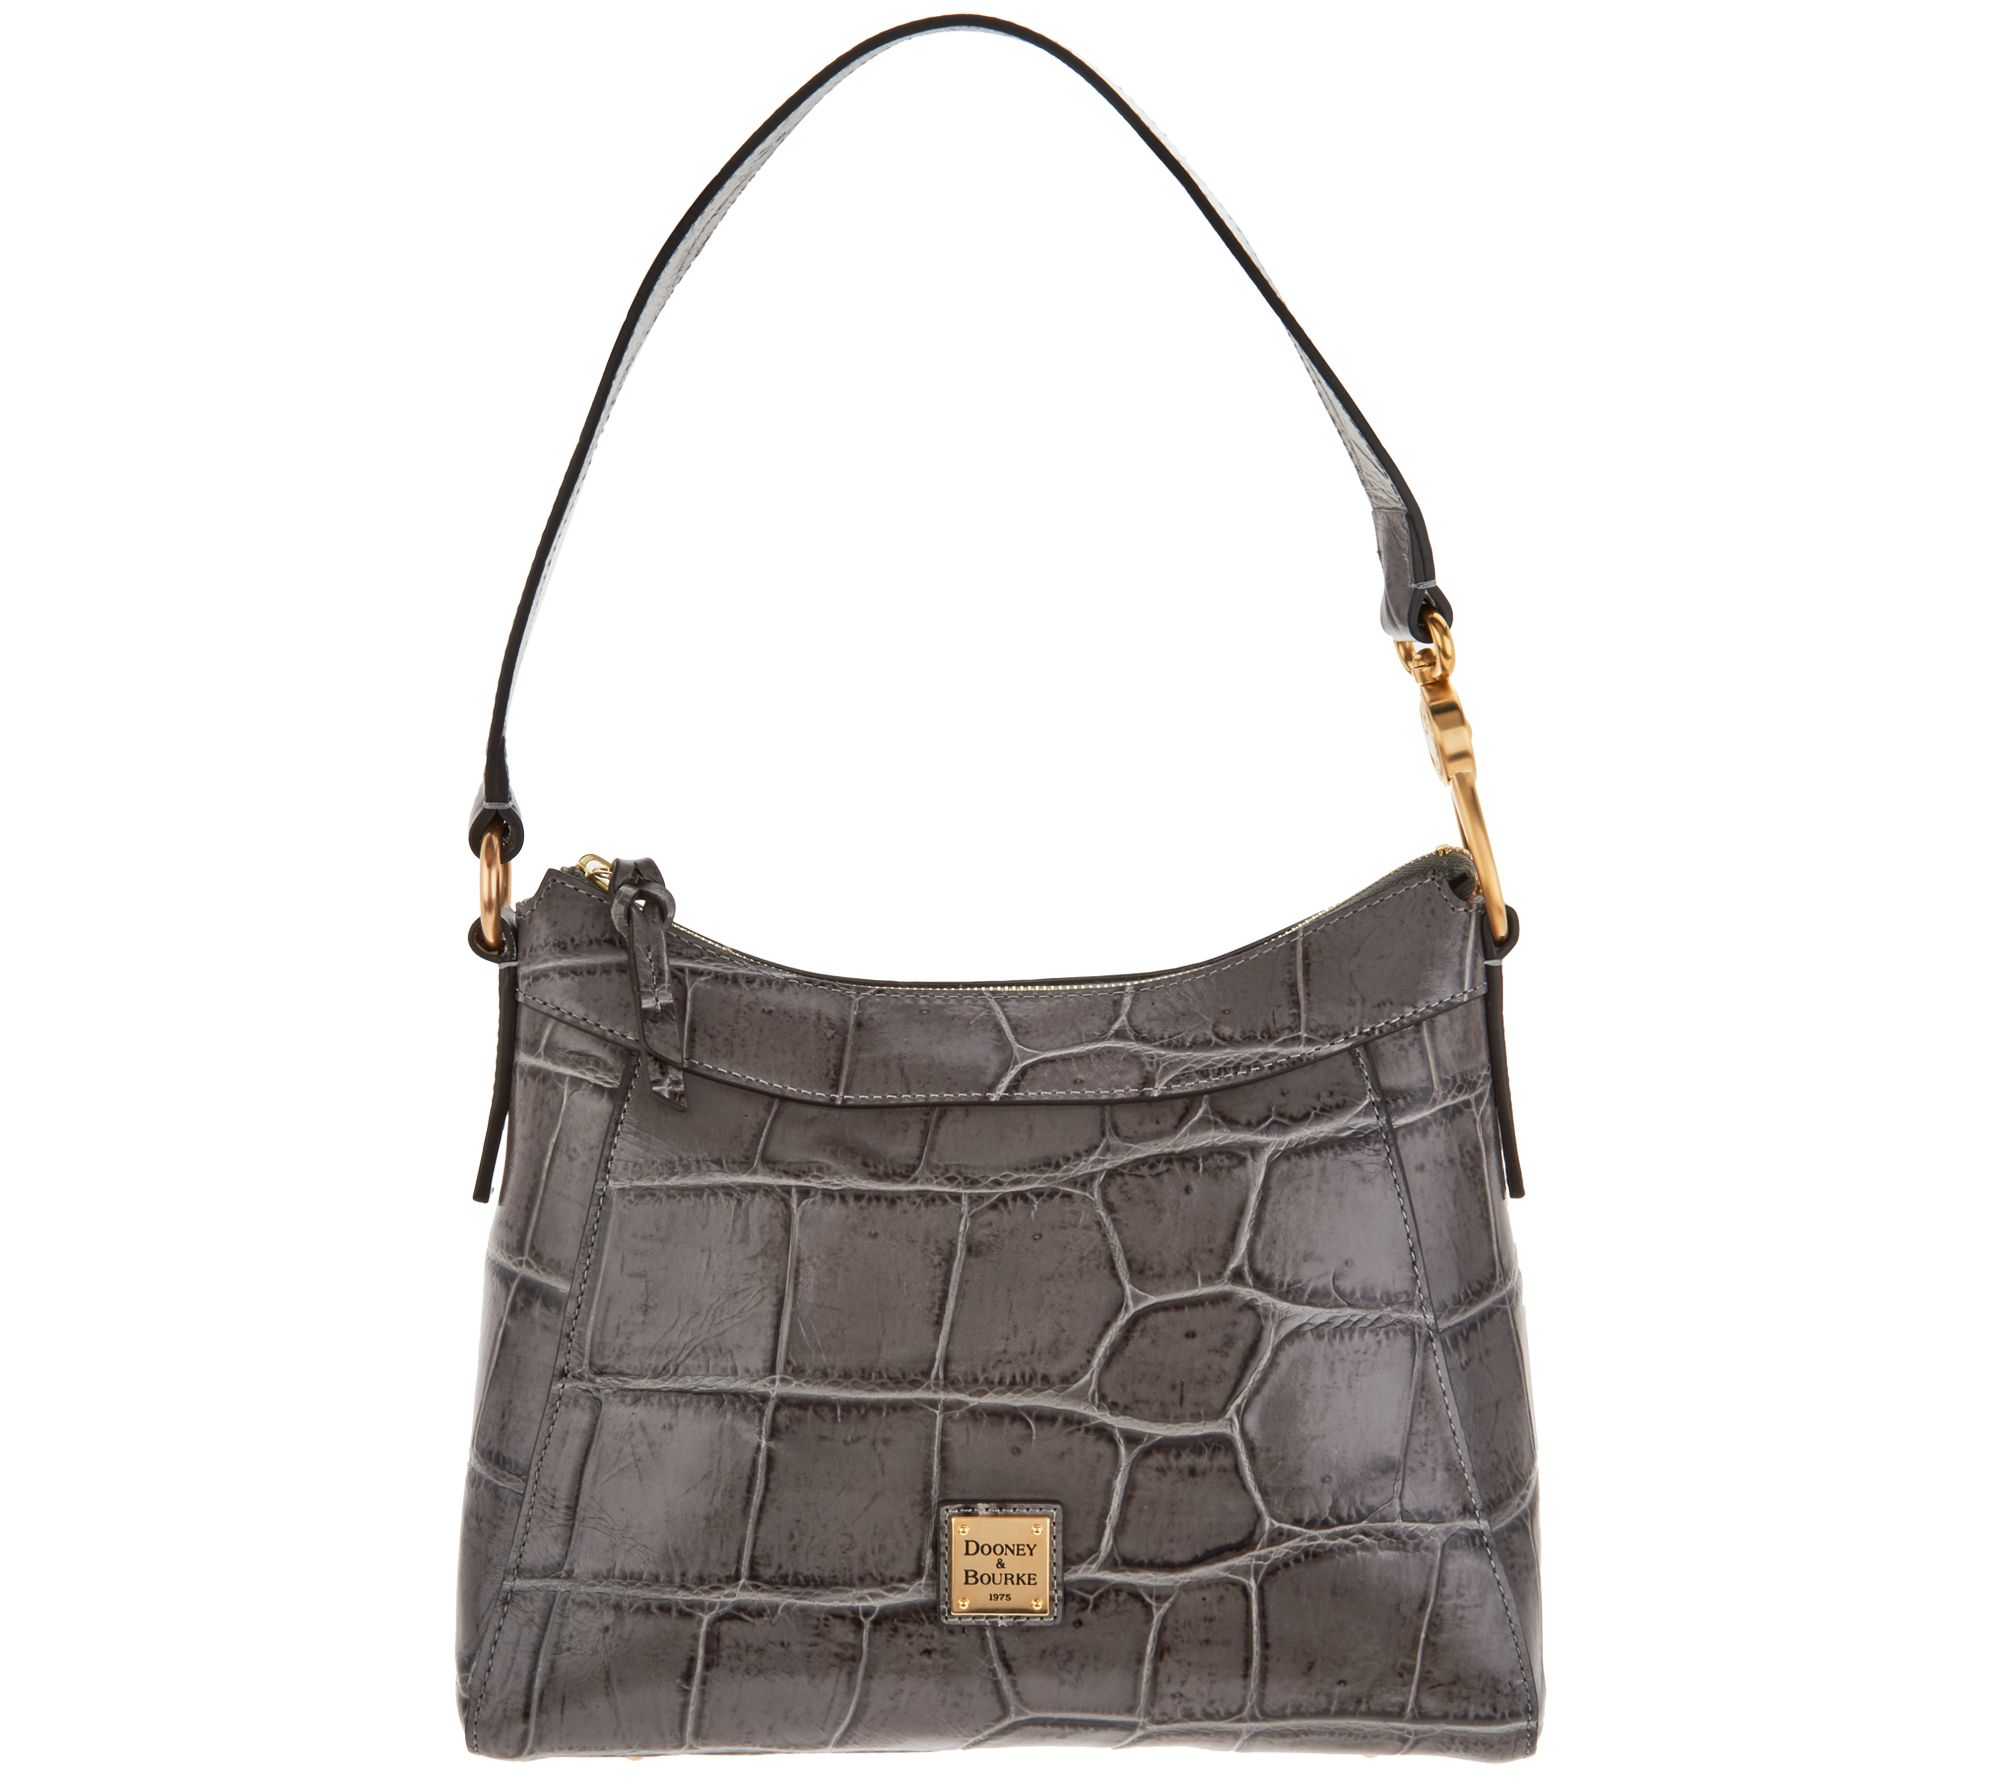 Leather quilted handbags and purses - Dooney Bourke Croco Leather Large Cassidy Hobo Handbag A300768